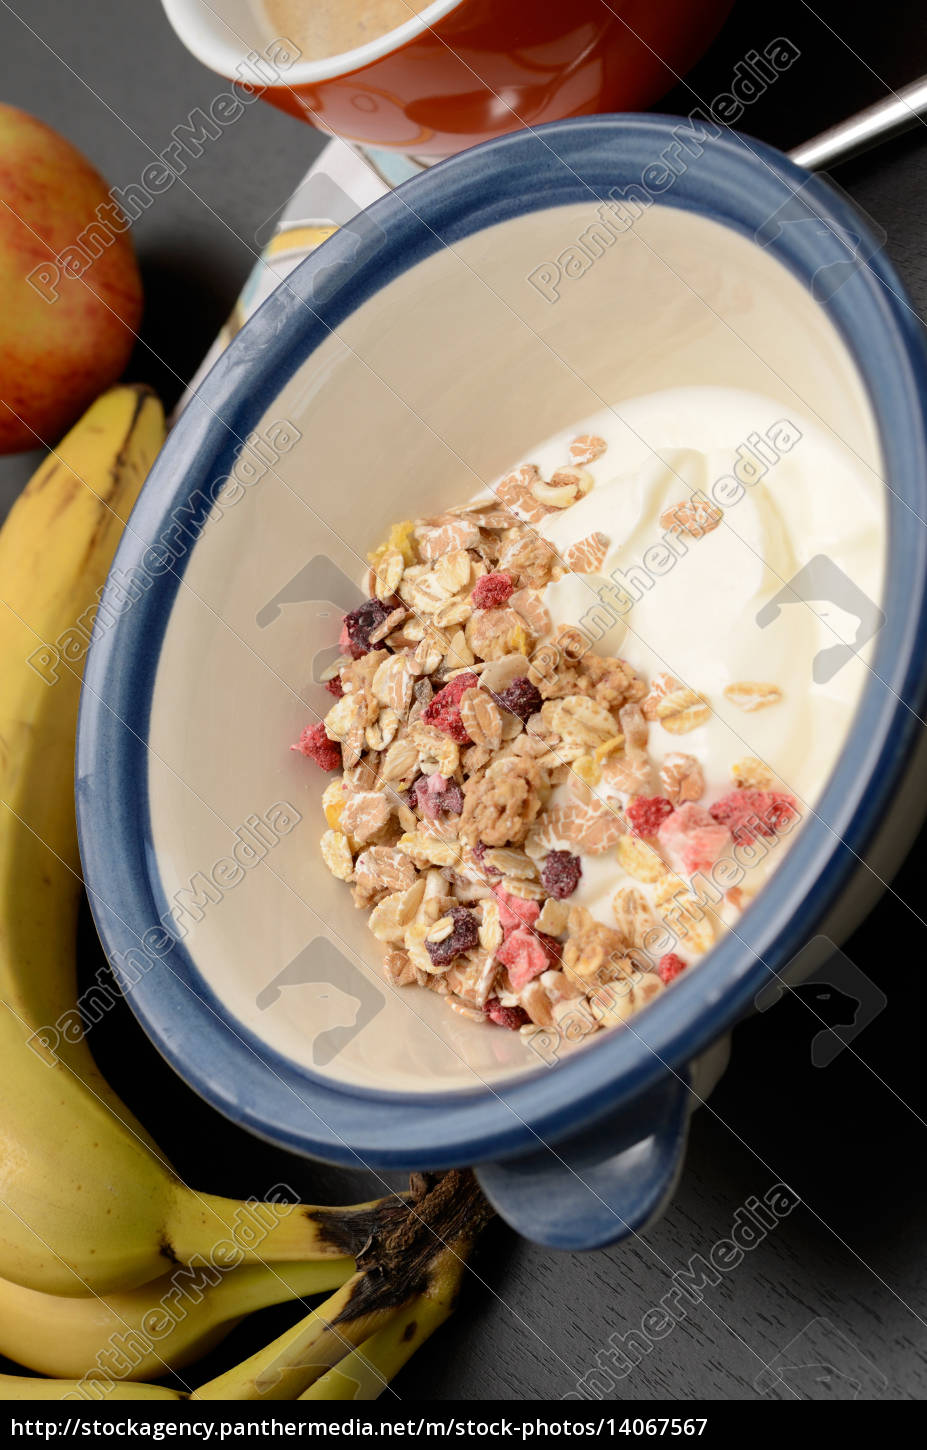 healthy, breakfast - 14067567